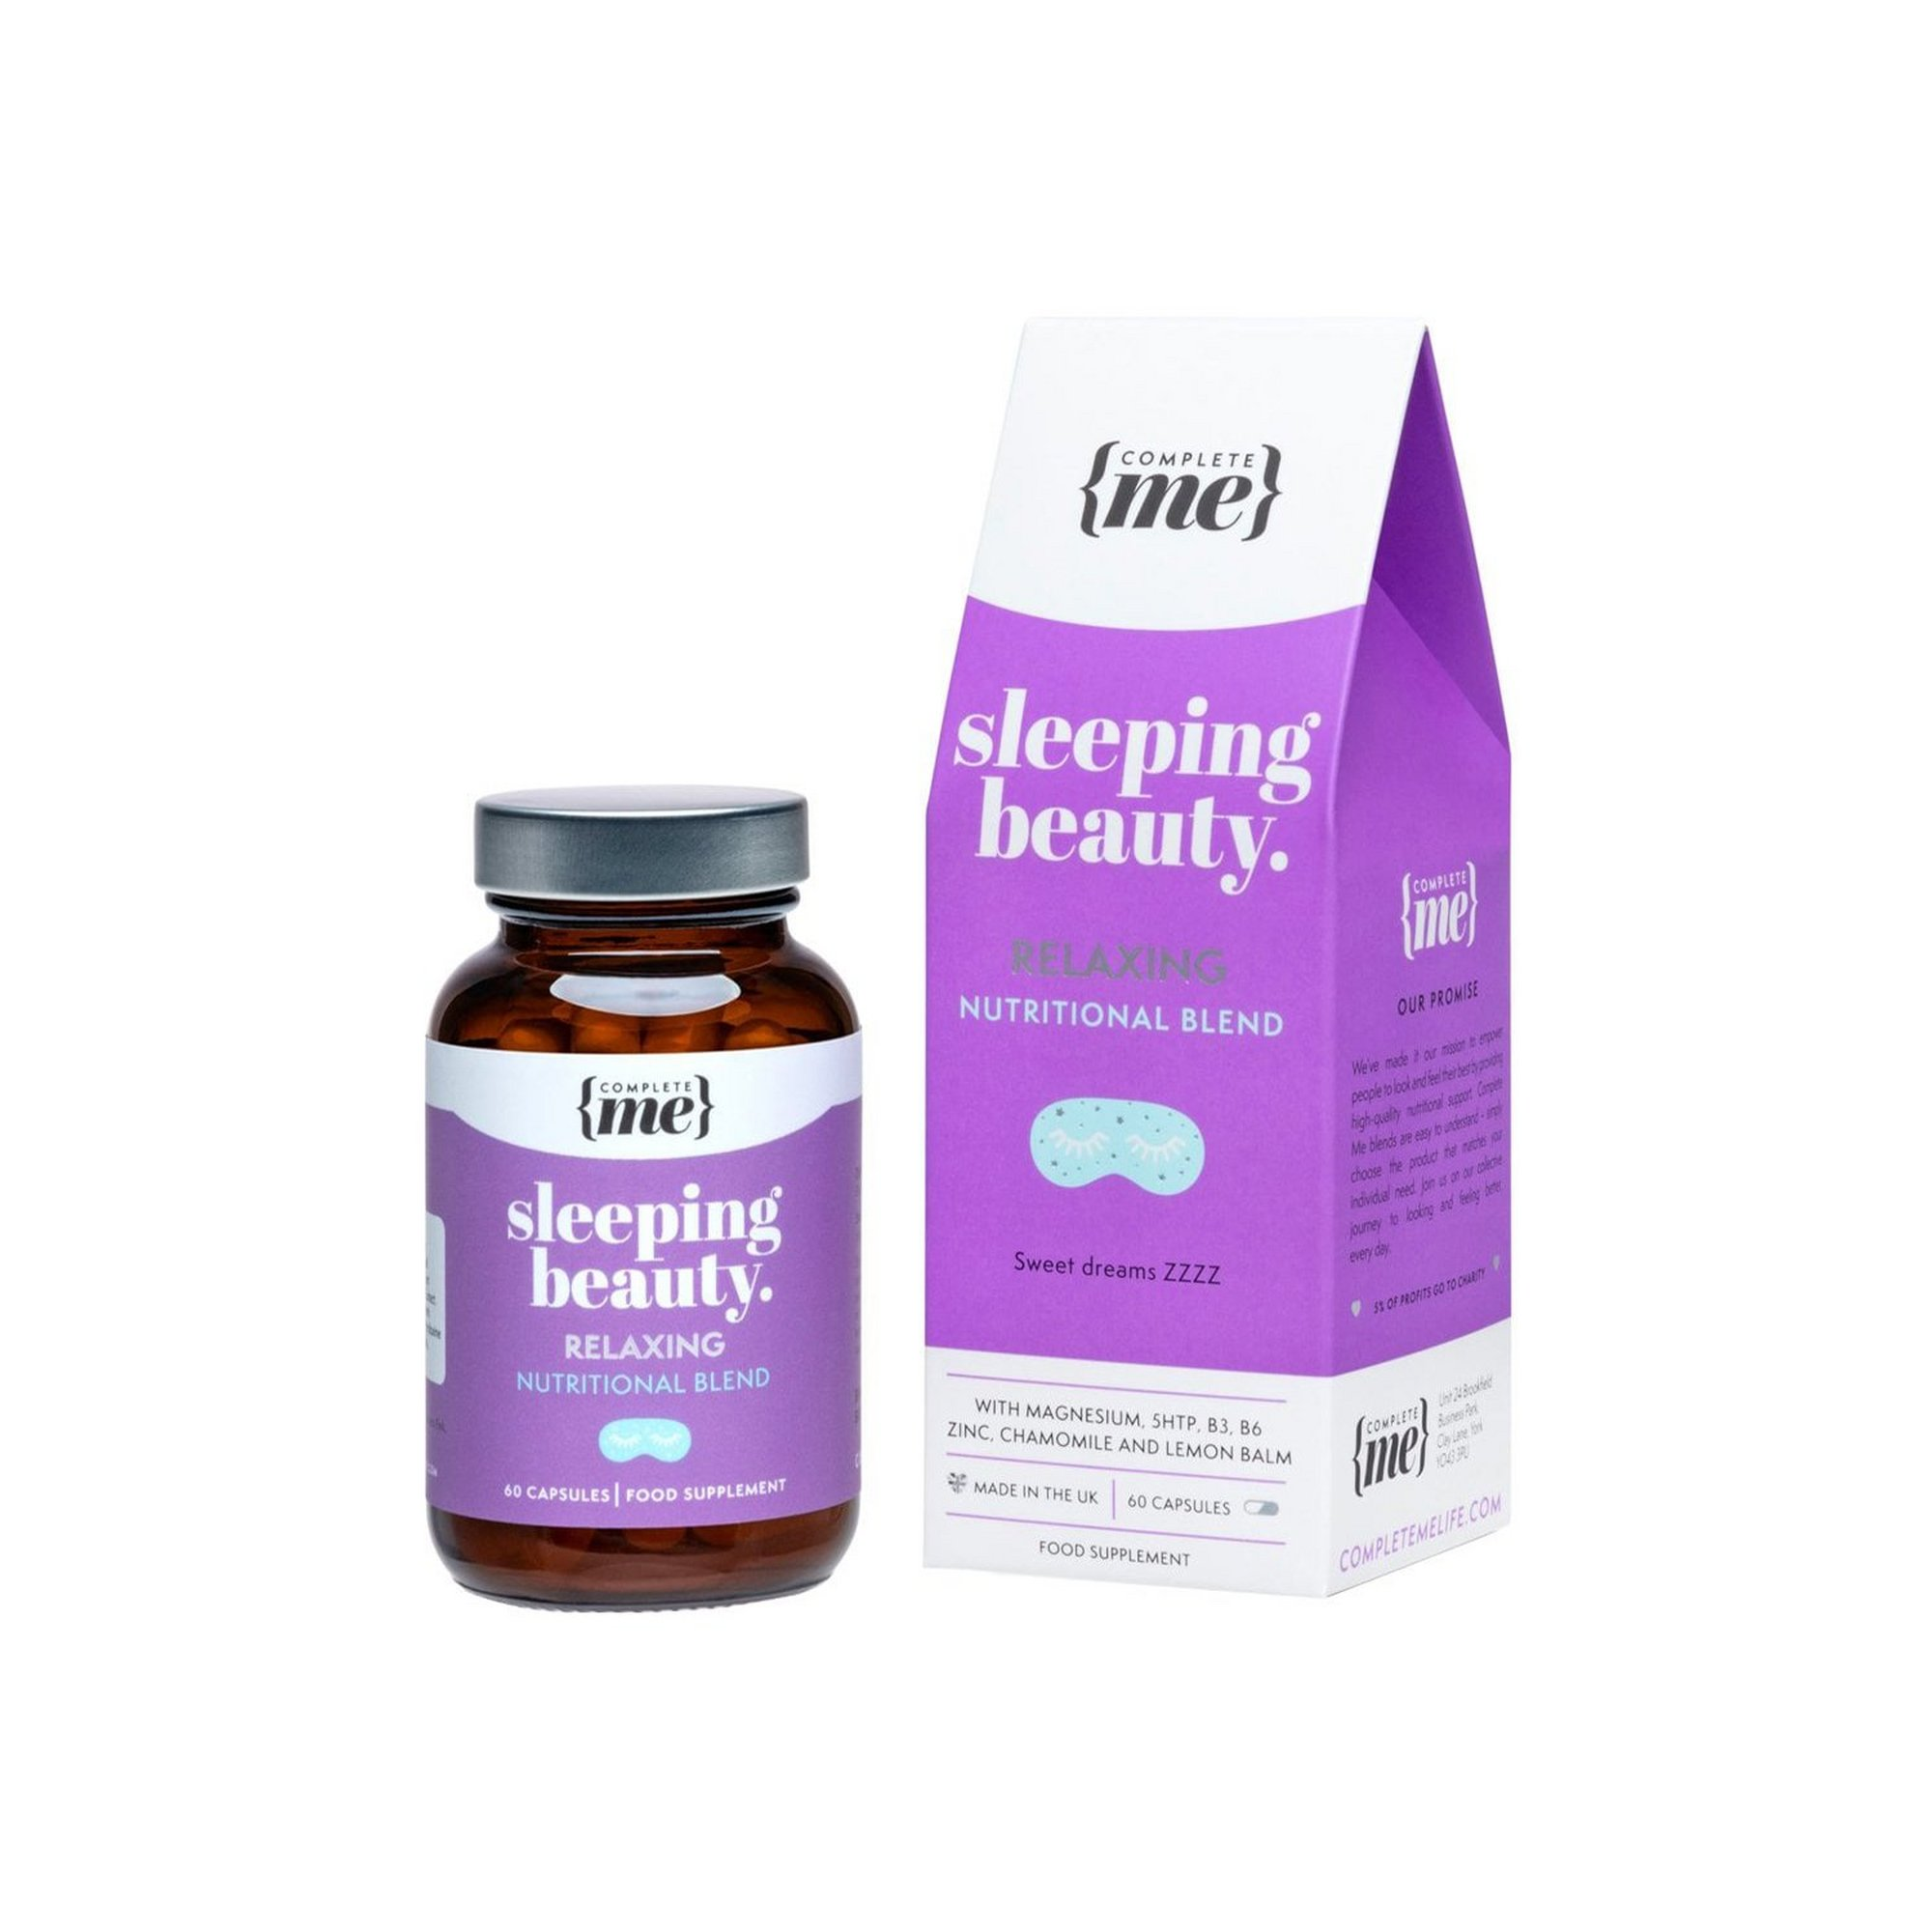 Image of Complete Me Sleeping Beauty Relaxing Nutritional Blend Capsules